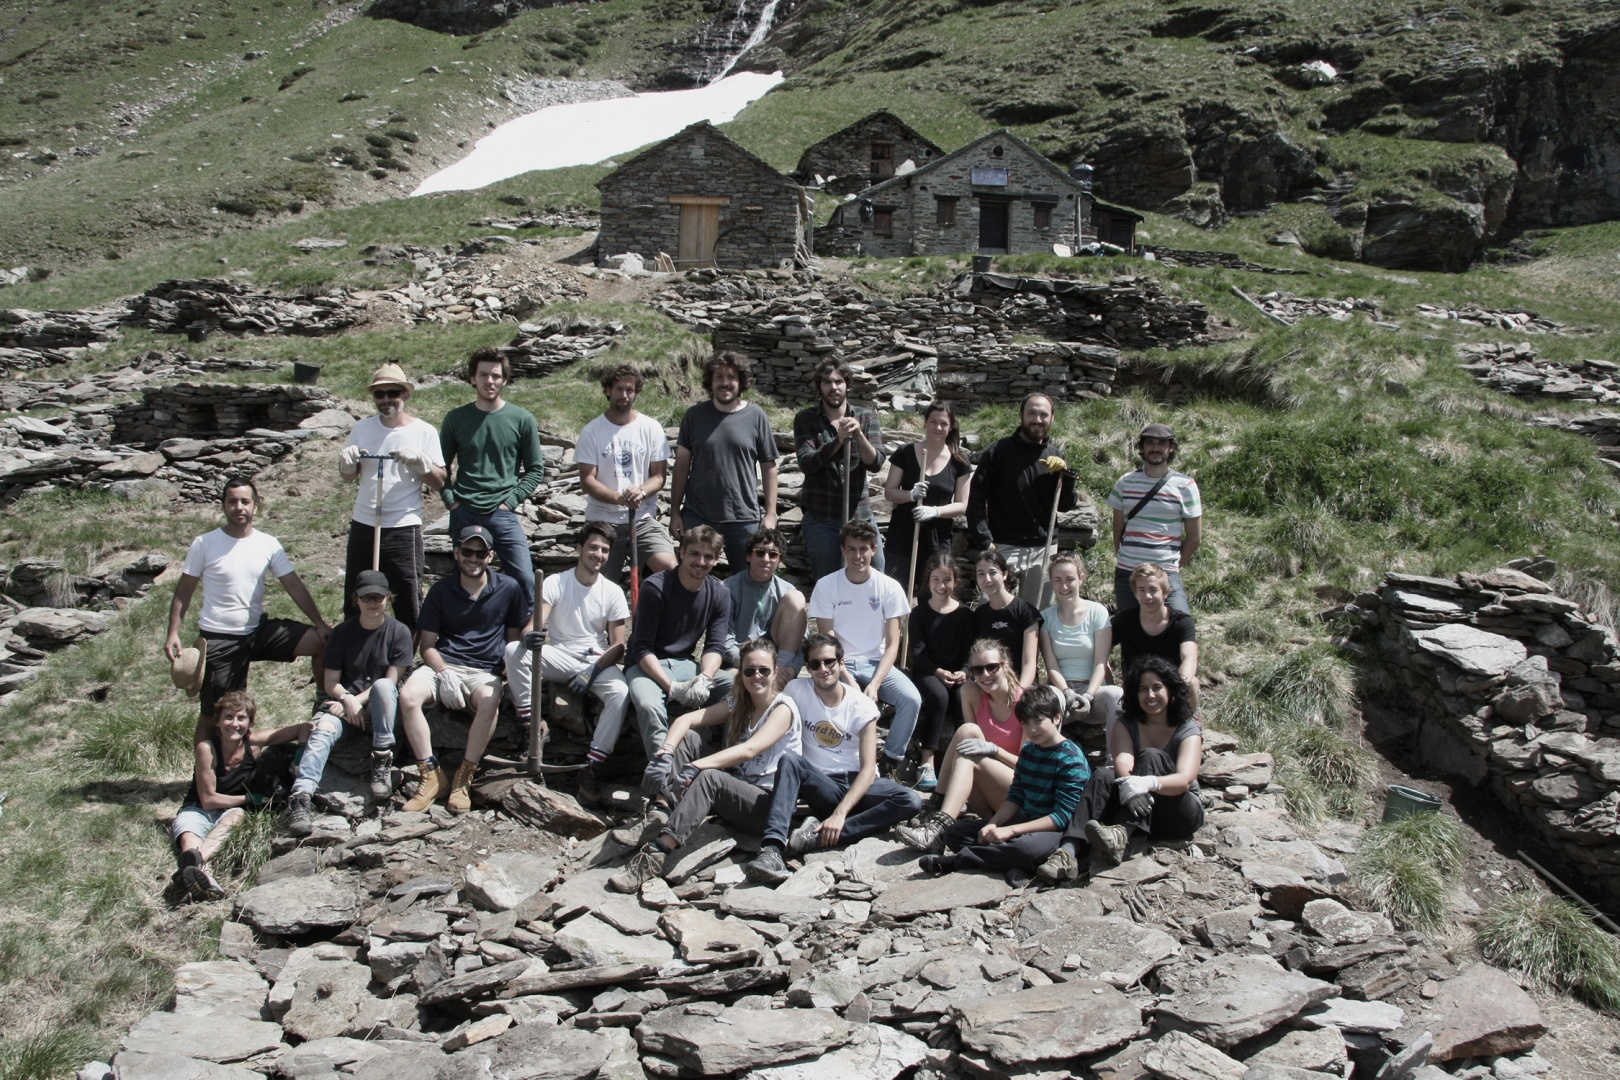 2 - Group picture on 22.6.2014 © Pino Brioschi, Bellinzona